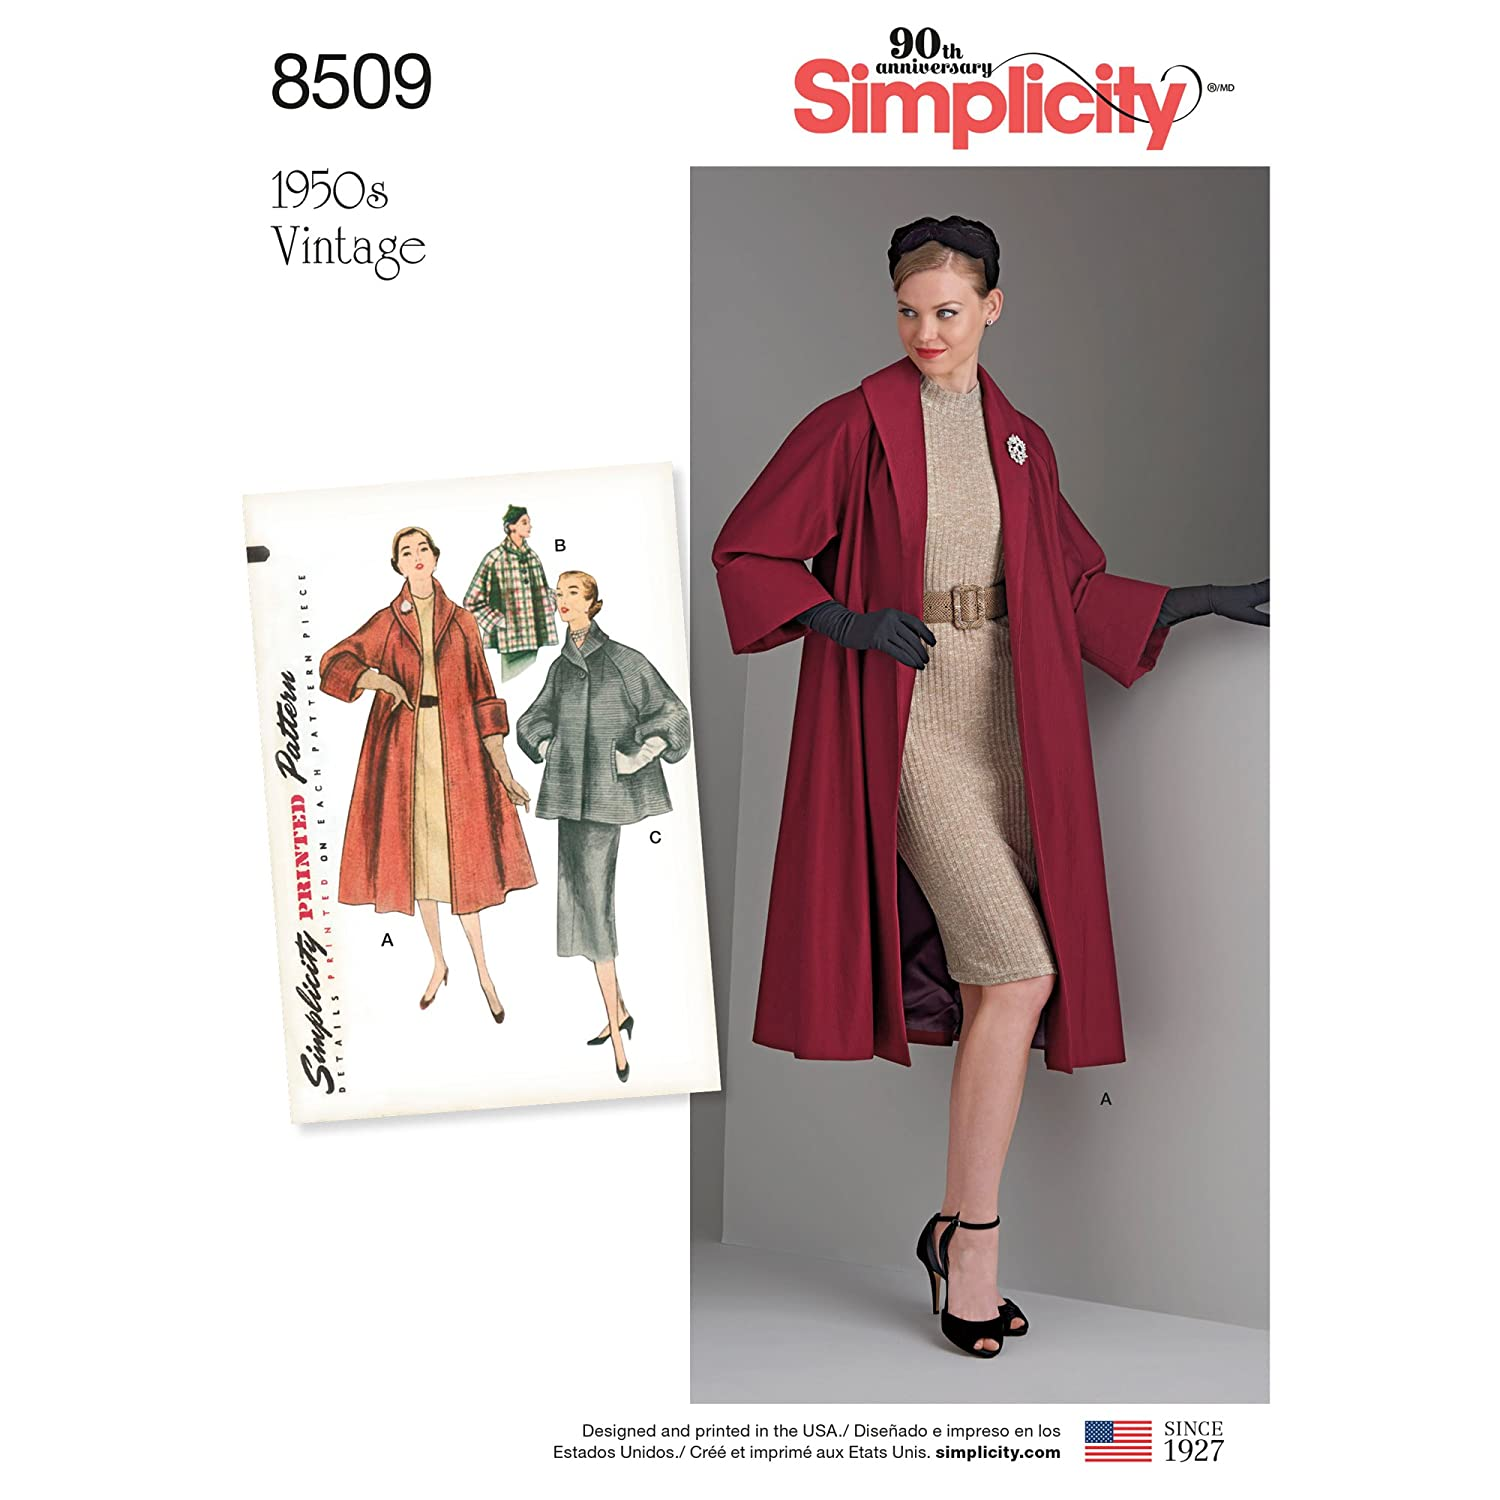 1950s Sewing Patterns | Swing and Wiggle Dresses, Skirts Simplicity Creative Patterns US8509R5 Sewing Tops/Vest/Jkts/Coats R5 (14-16-18-20-22) $10.01 AT vintagedancer.com